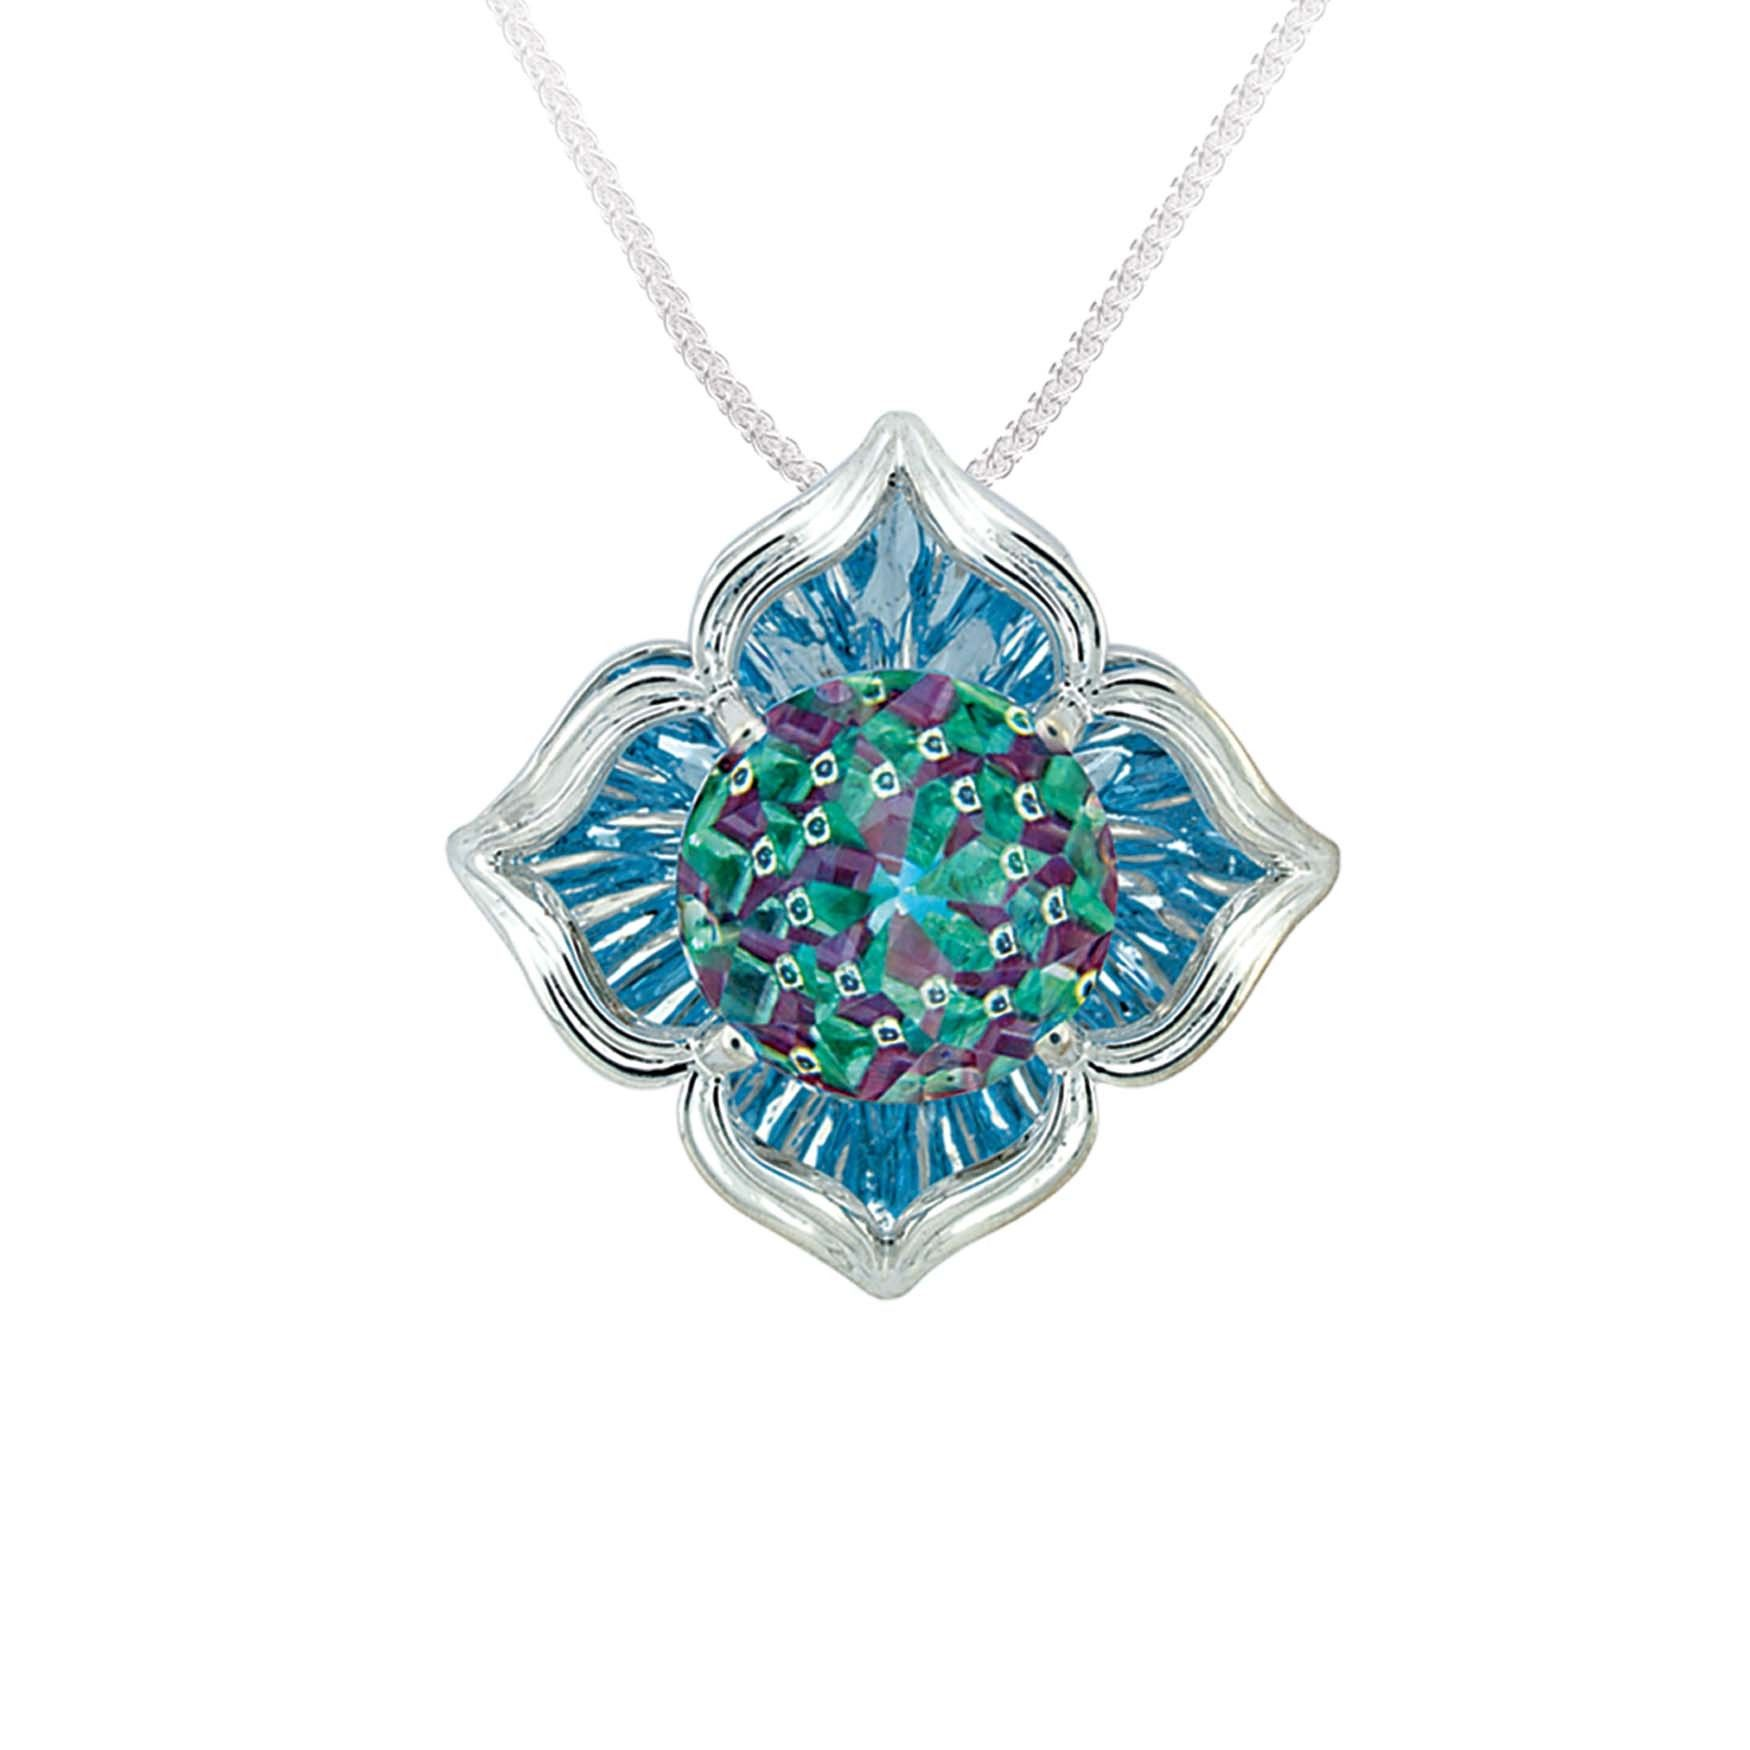 Pendant - White 14K Davinchi Pendant With One 10.00Mm Davinchi Cut Blue Topaz